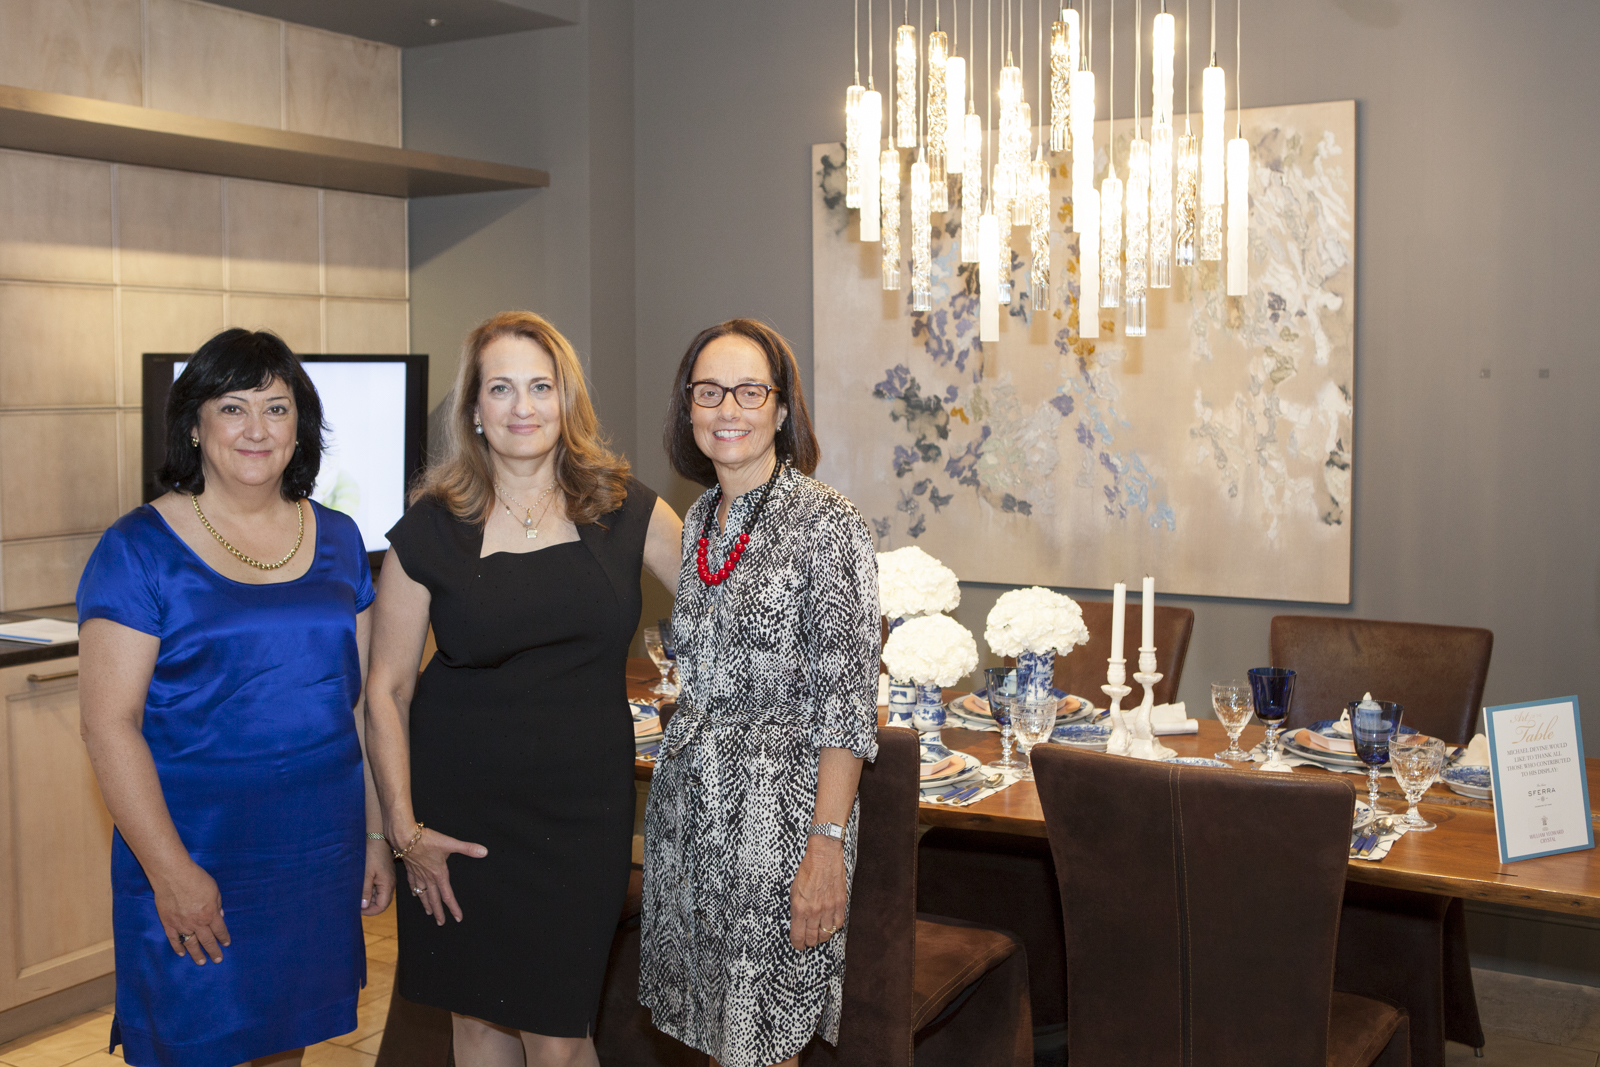 Wendy Kvalheim of Mottahedeh; Marianne Rosenberg of Rosenberg and Co.; Regina Bilotta of Bilotta Kitchens